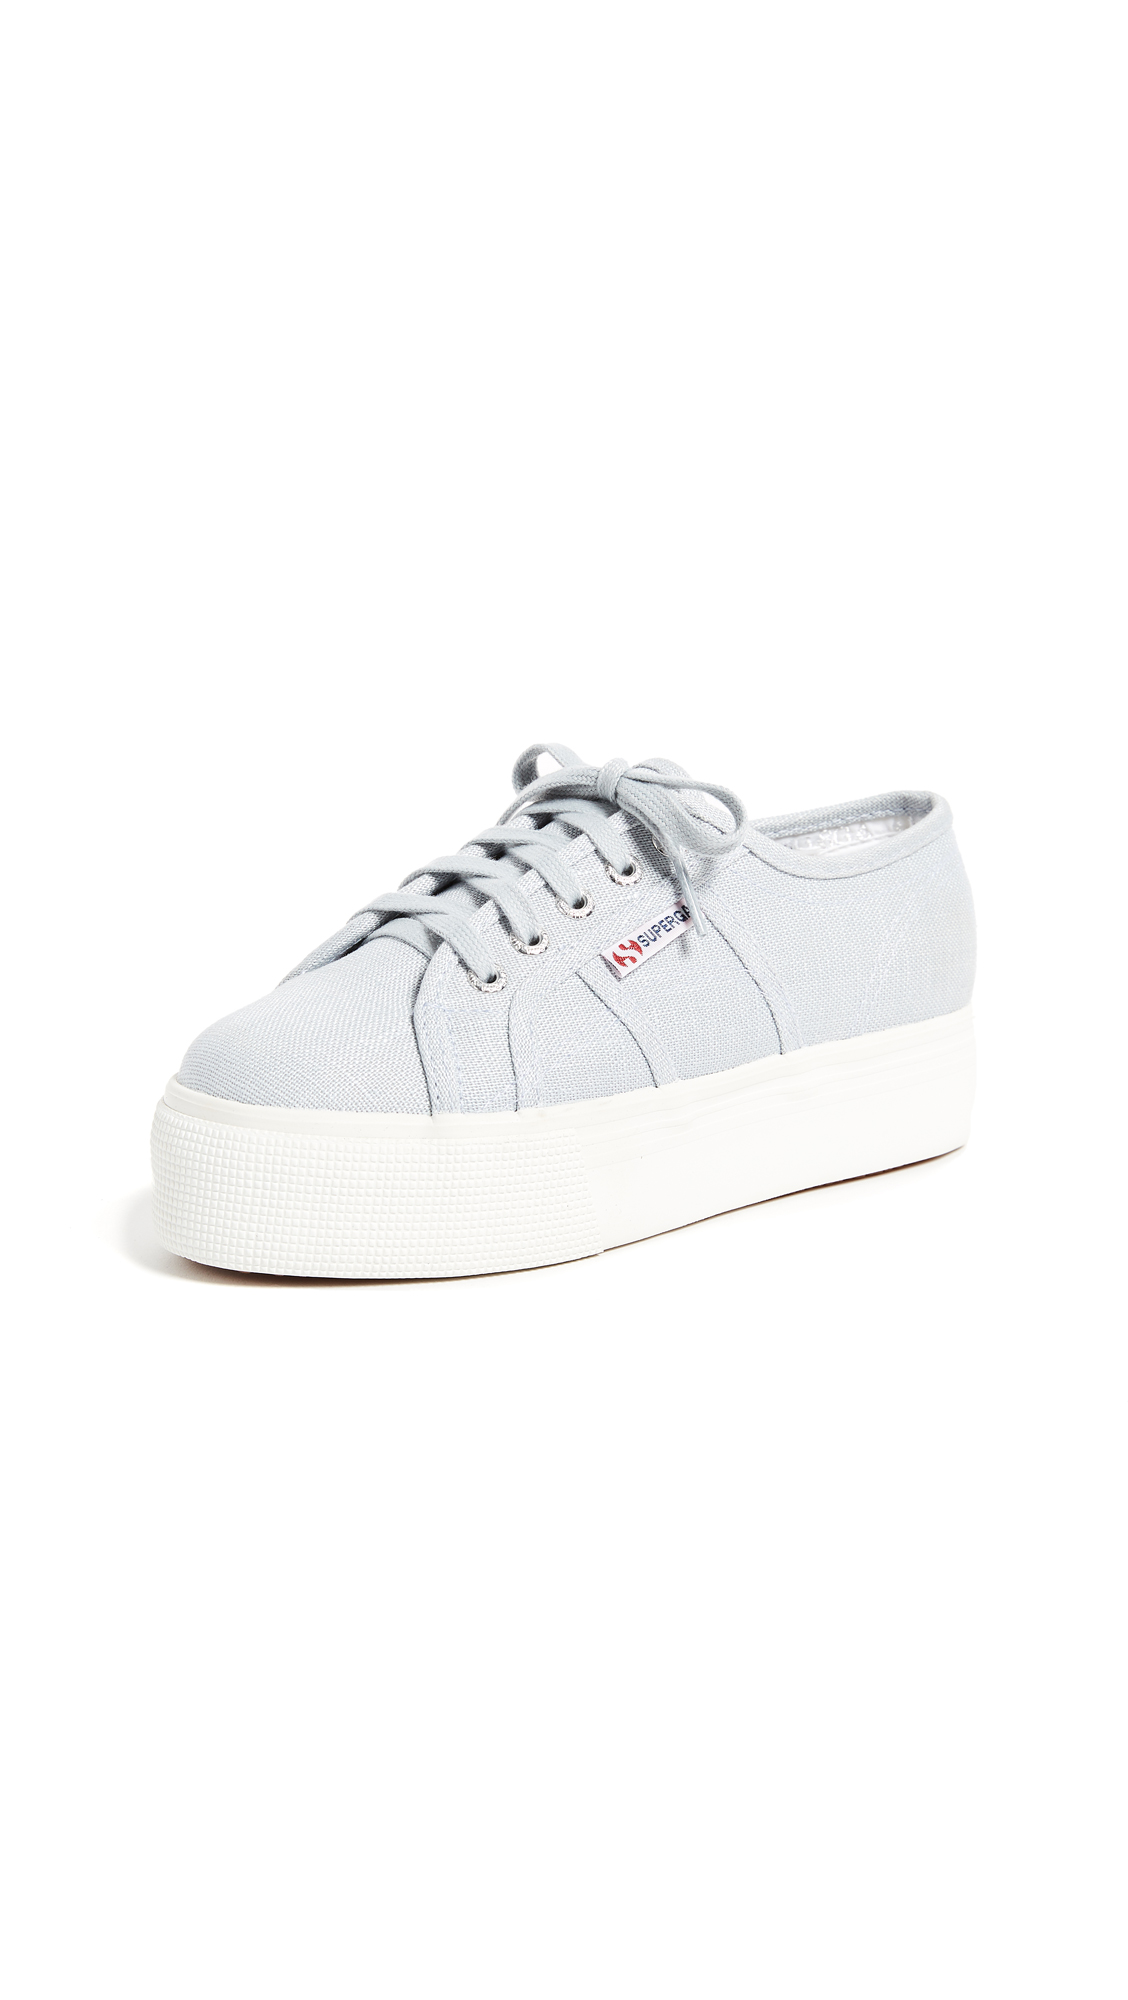 Superga 2790 Linen Platform Sneakers - Chambray